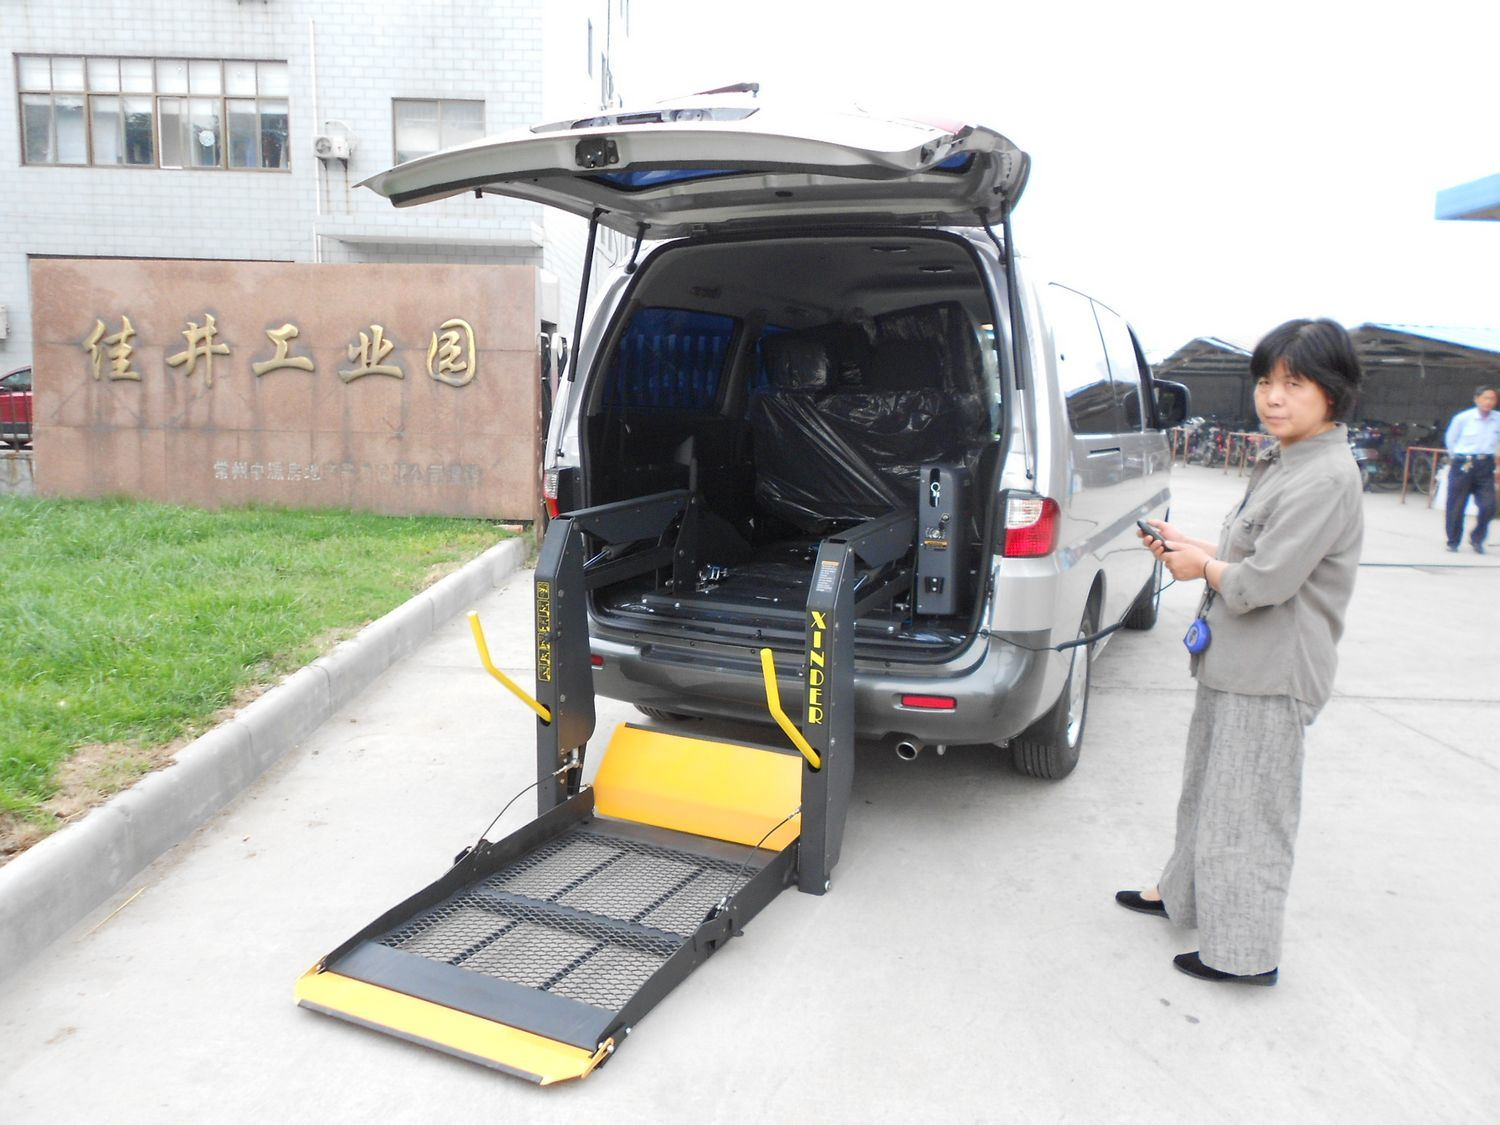 wheel chair lift for van. This Wheelchair Lift Gives New Meaning To The Term Accessibility. Fully Automatic Split Platform Folds Up And Out Of Way At Push A Wheel Chair For Van